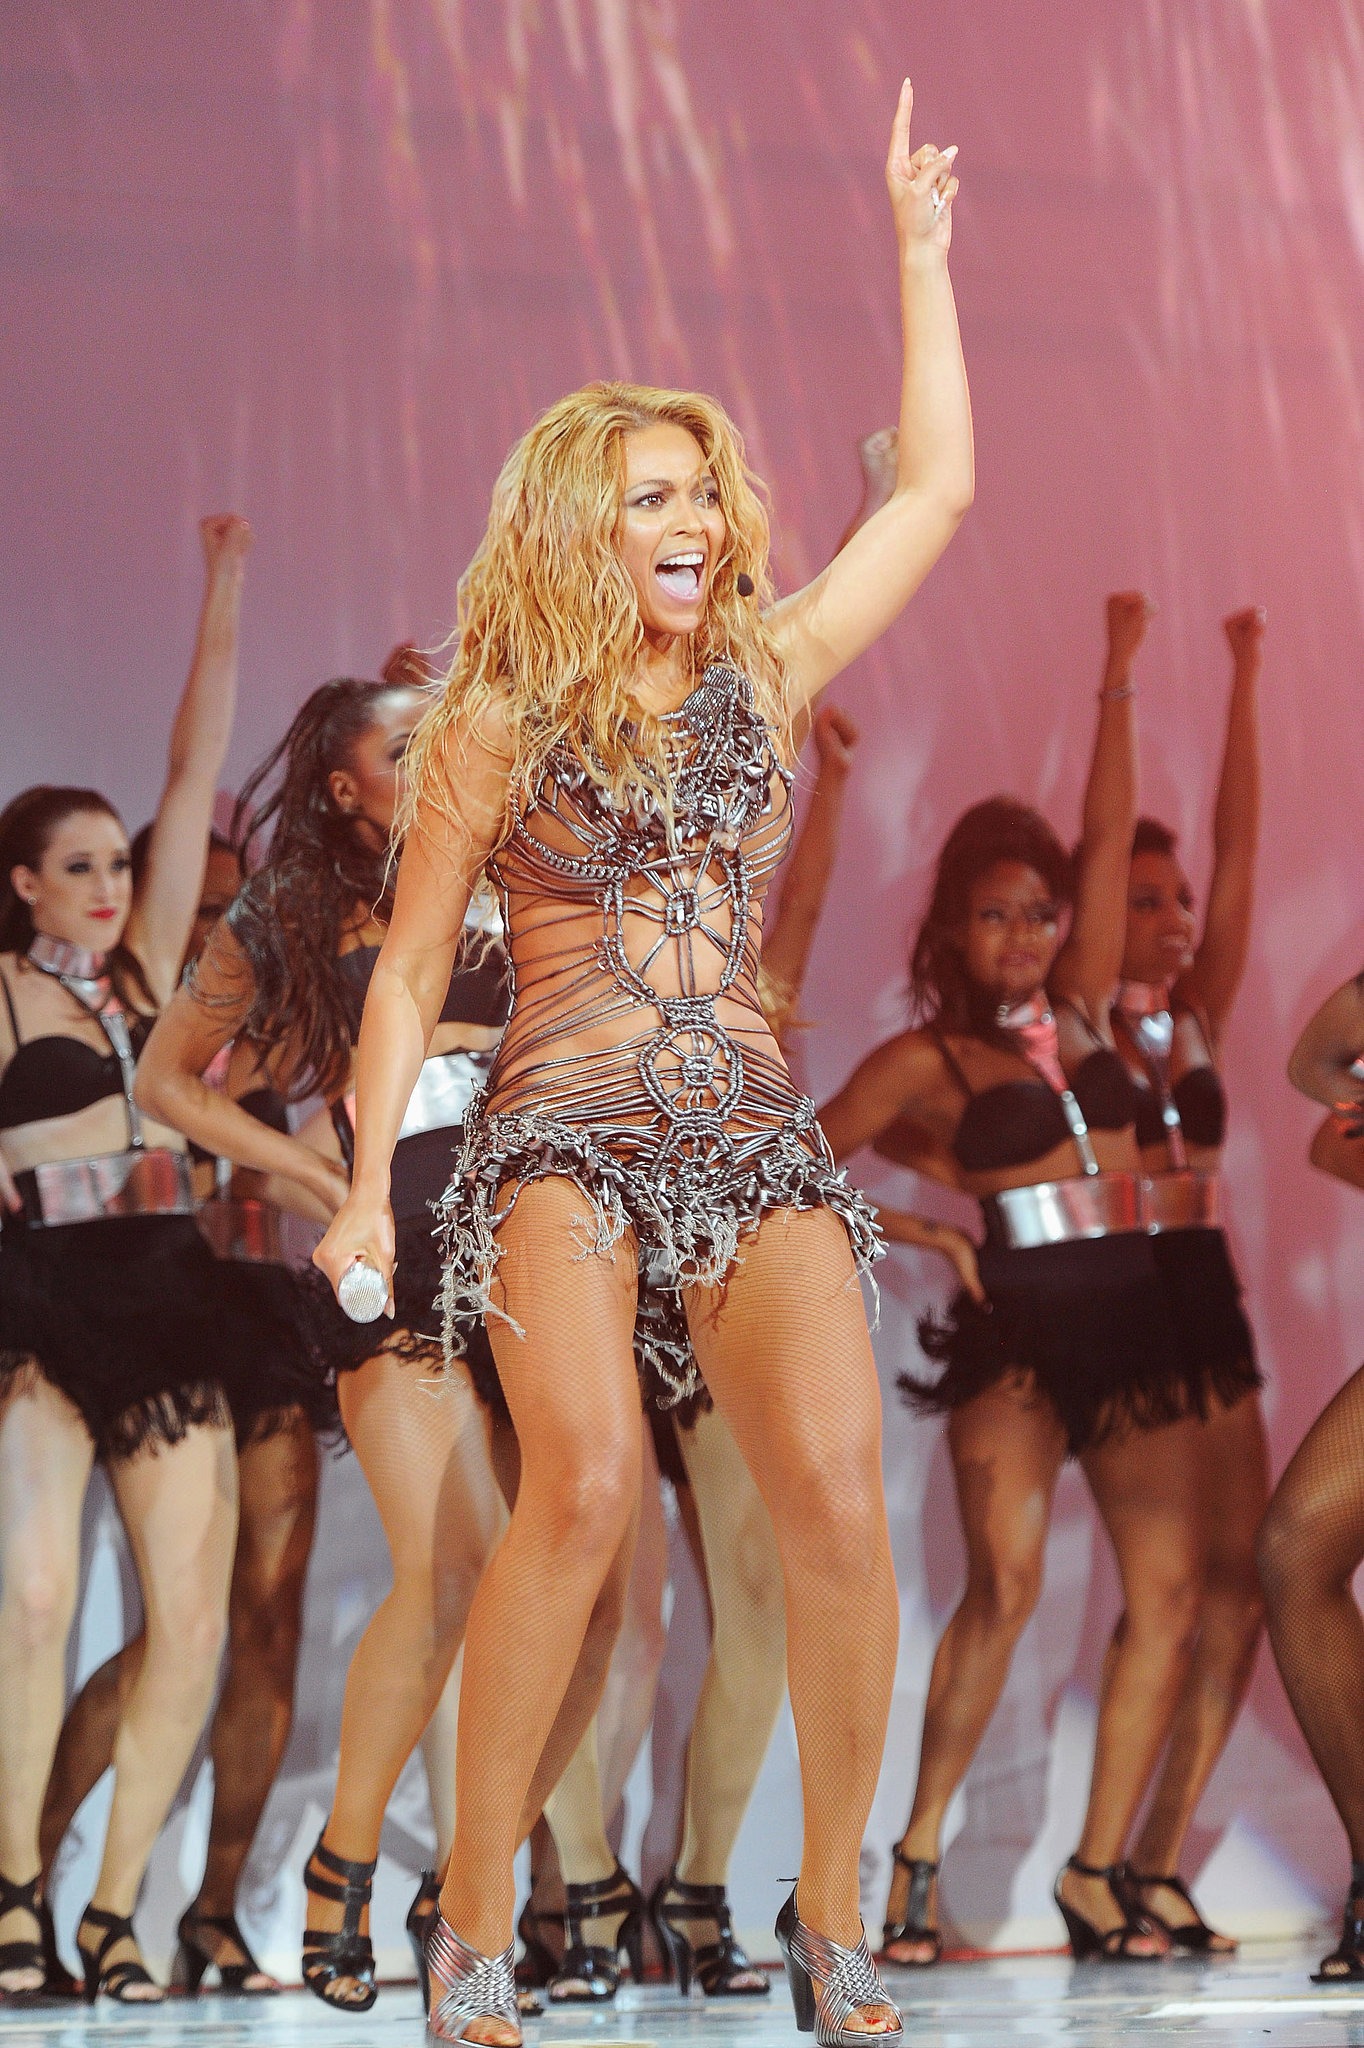 Beyoncé Knowles commanded the stage with dancers at the Billboard Music Awards in May 2011.